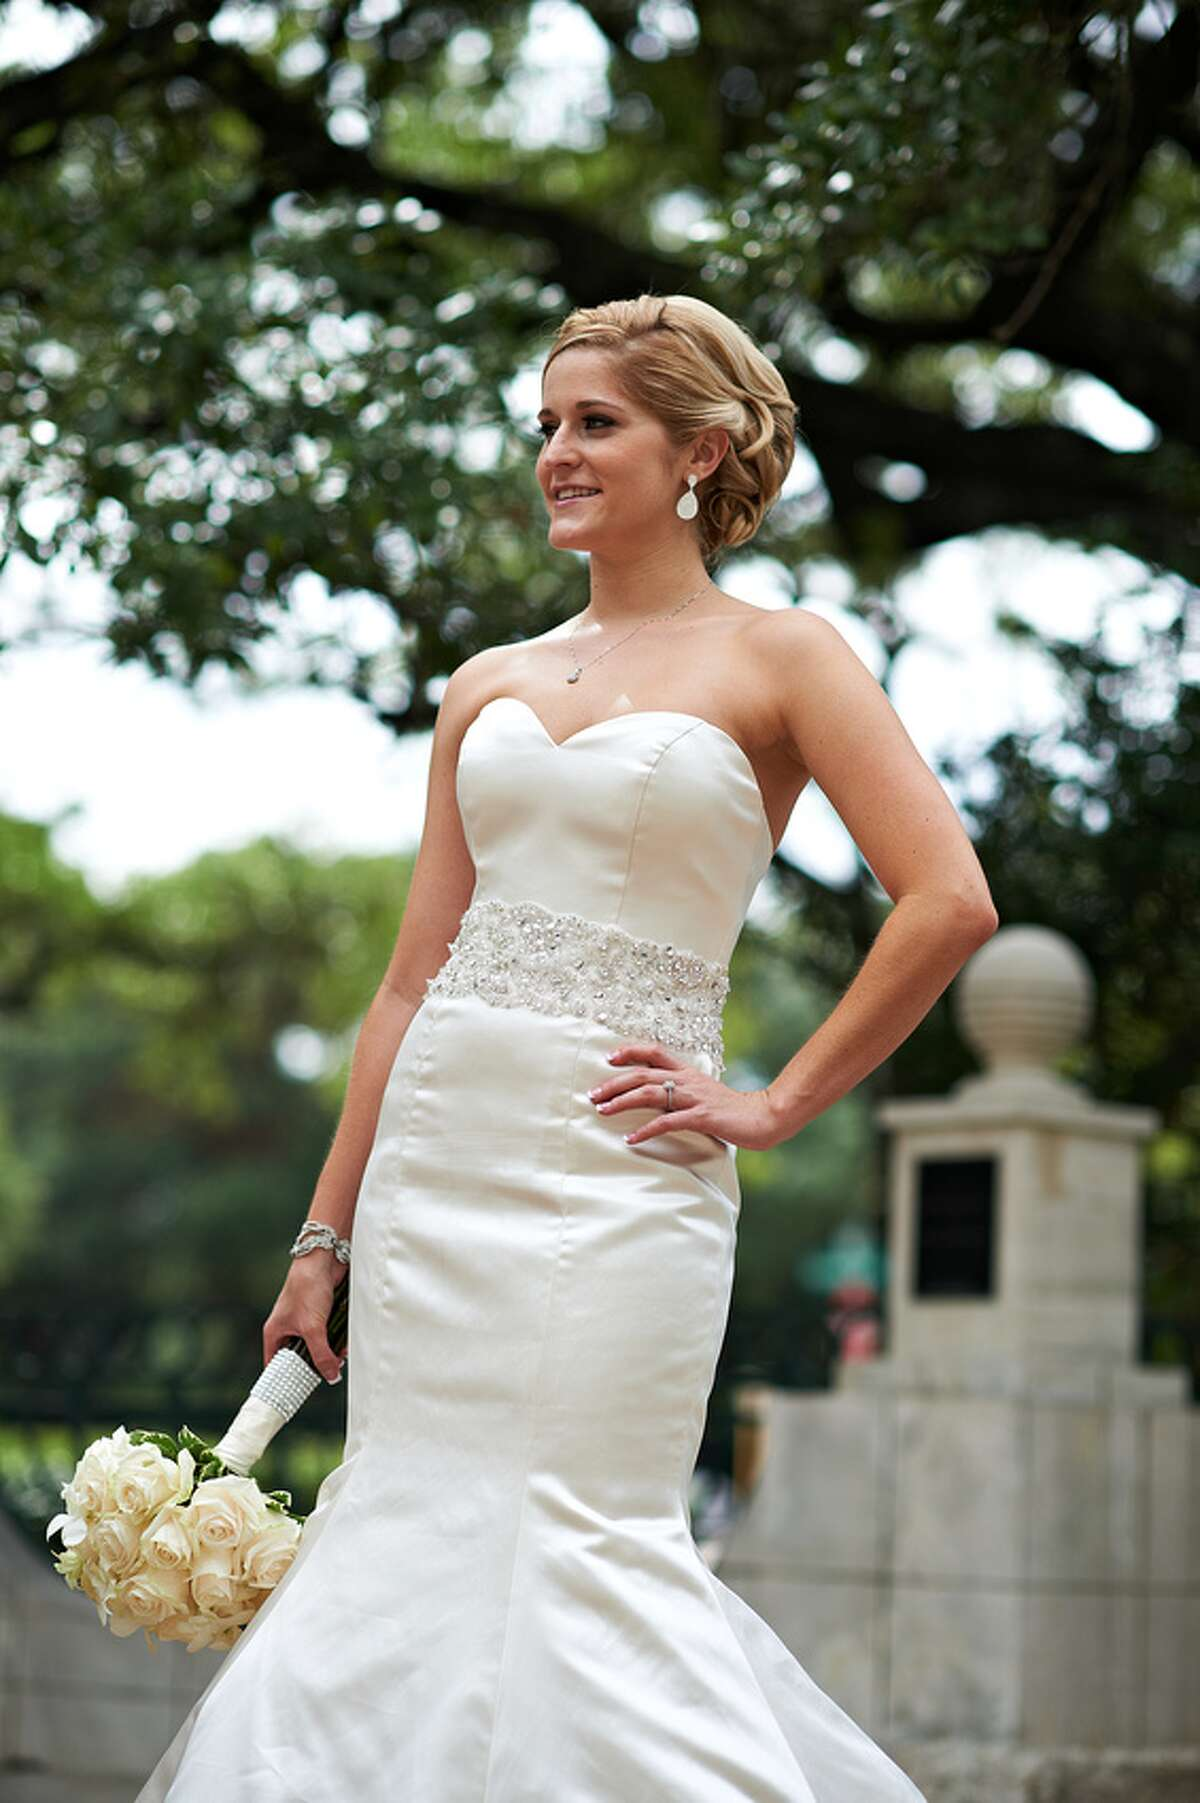 On the flip side, 29.7 percent of women in Houston over the age 15 have never been married. Source:U.S. Census Bureau